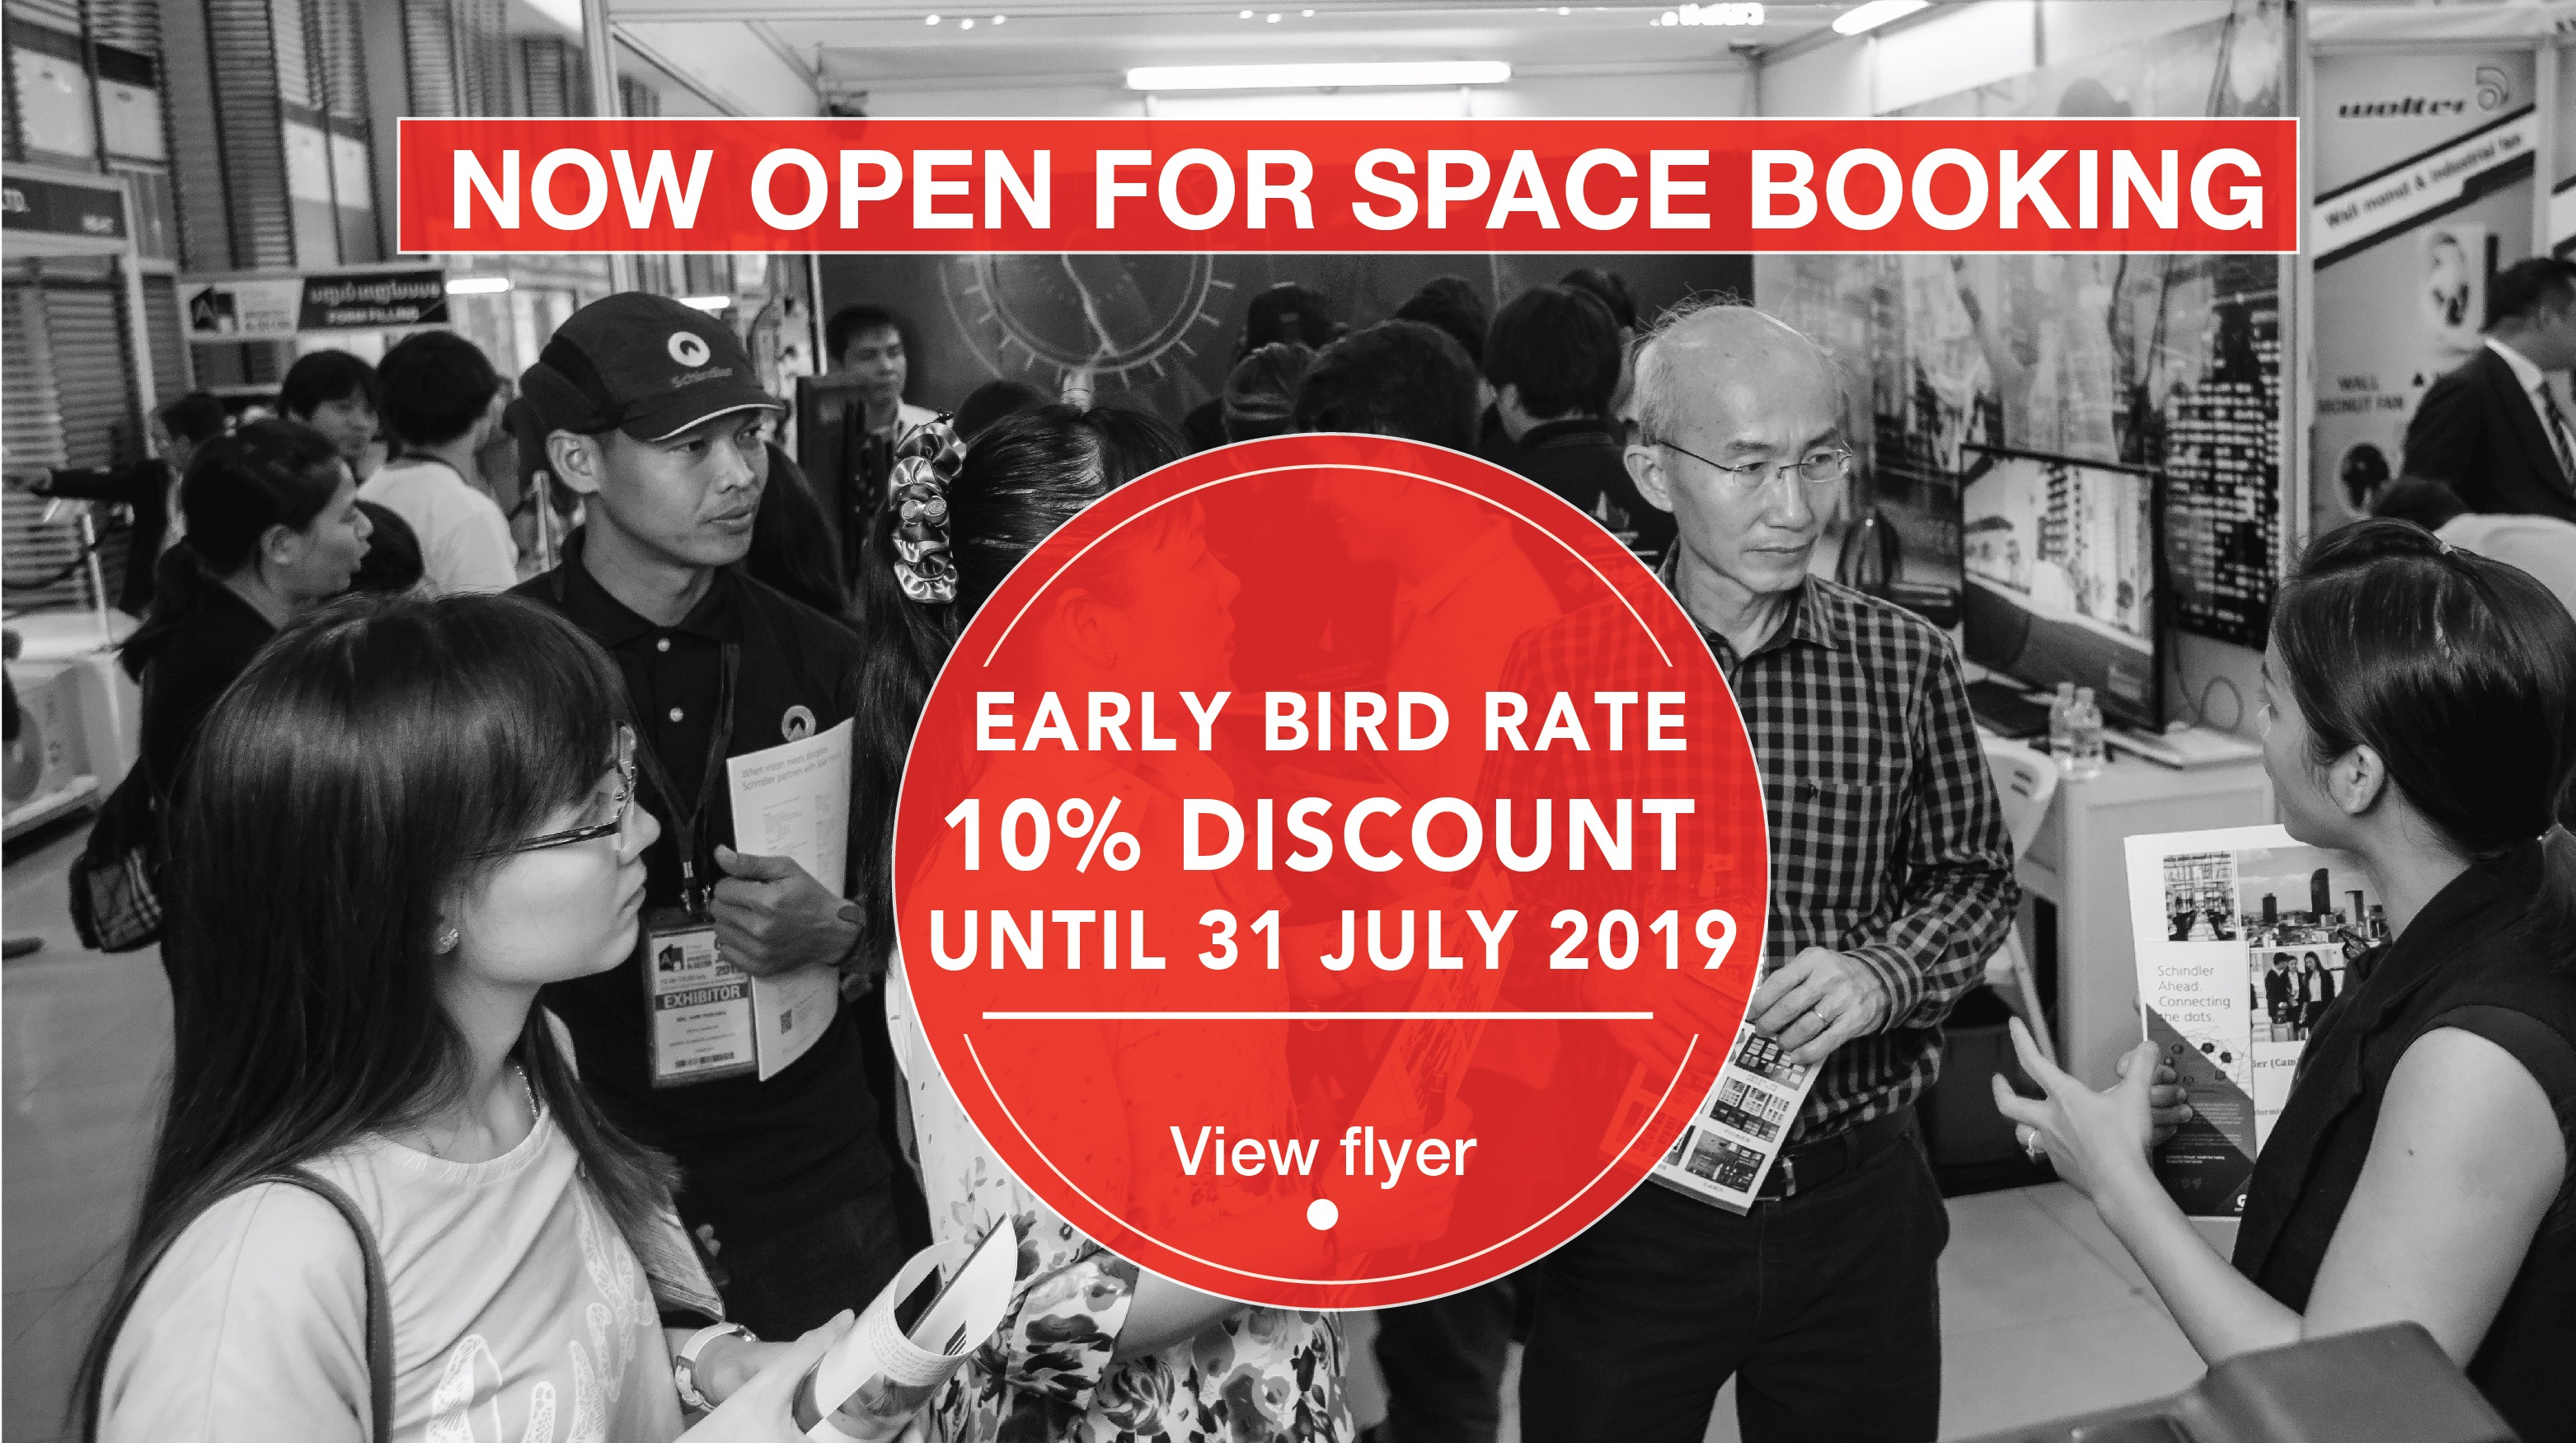 Early bird rate